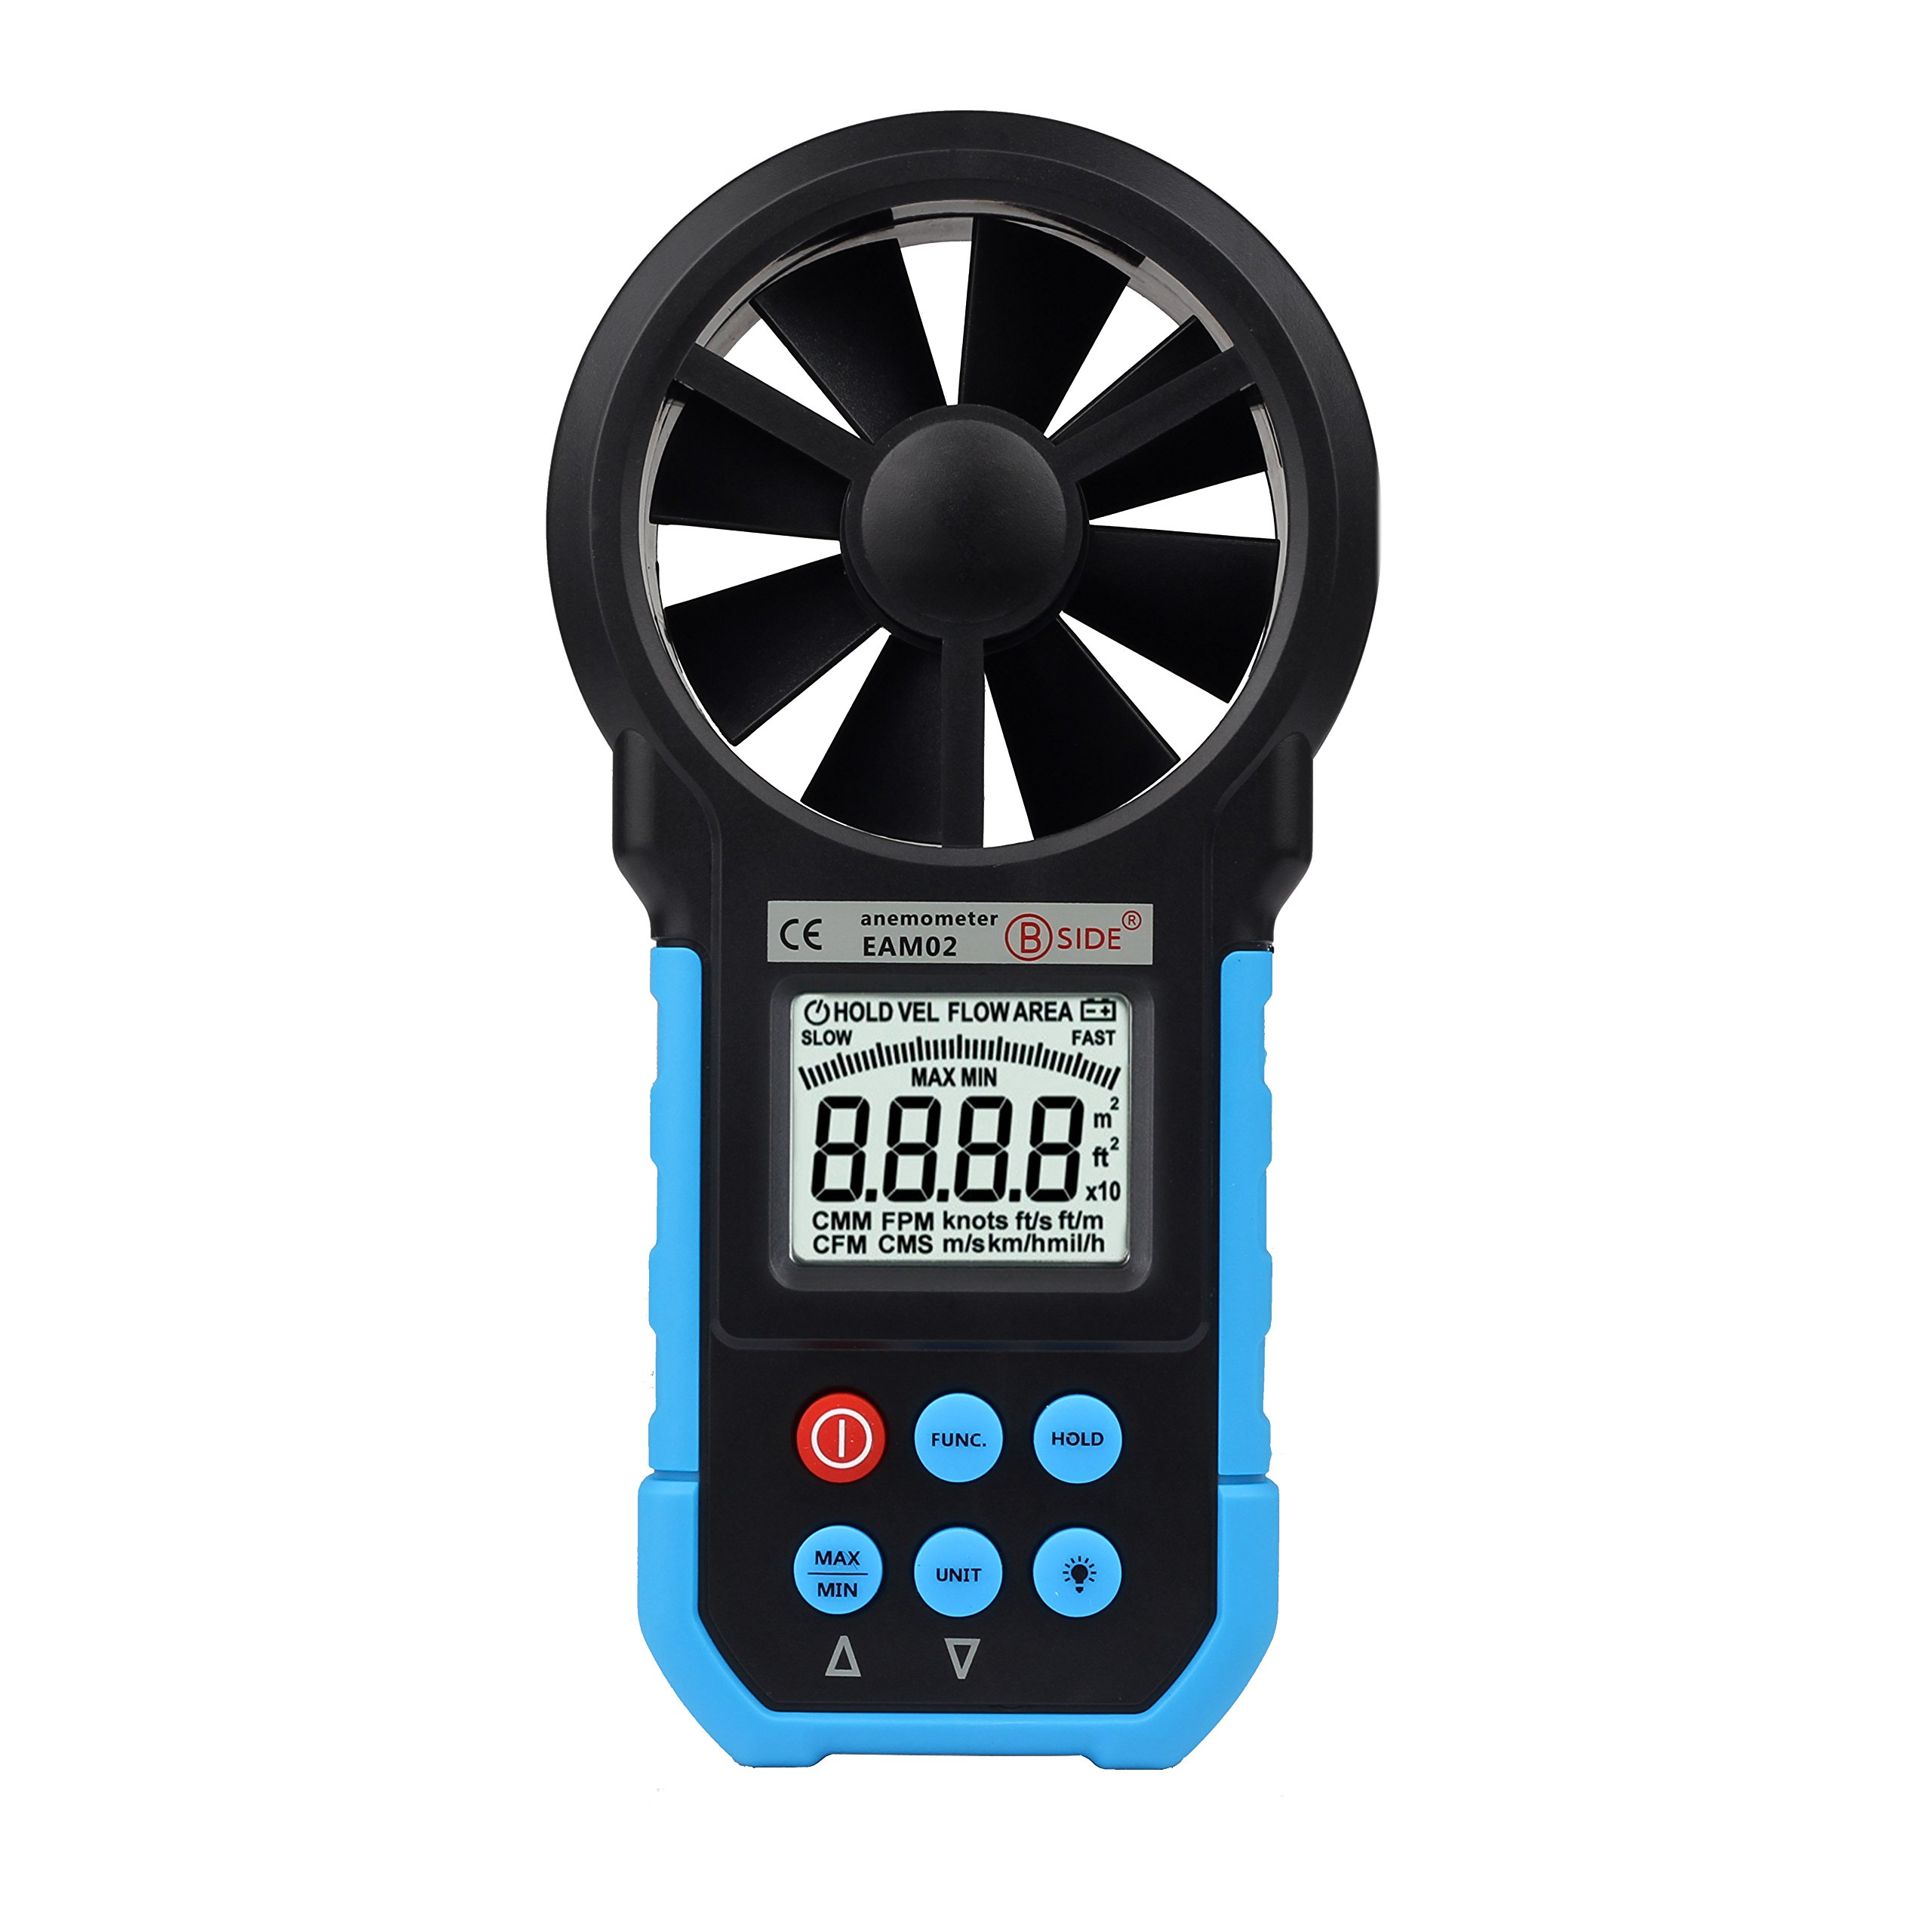 BSIDE EAM02 Handheld Digital Anemometer Wind Speed Meter Environmental Tester with Bar Graph Blue